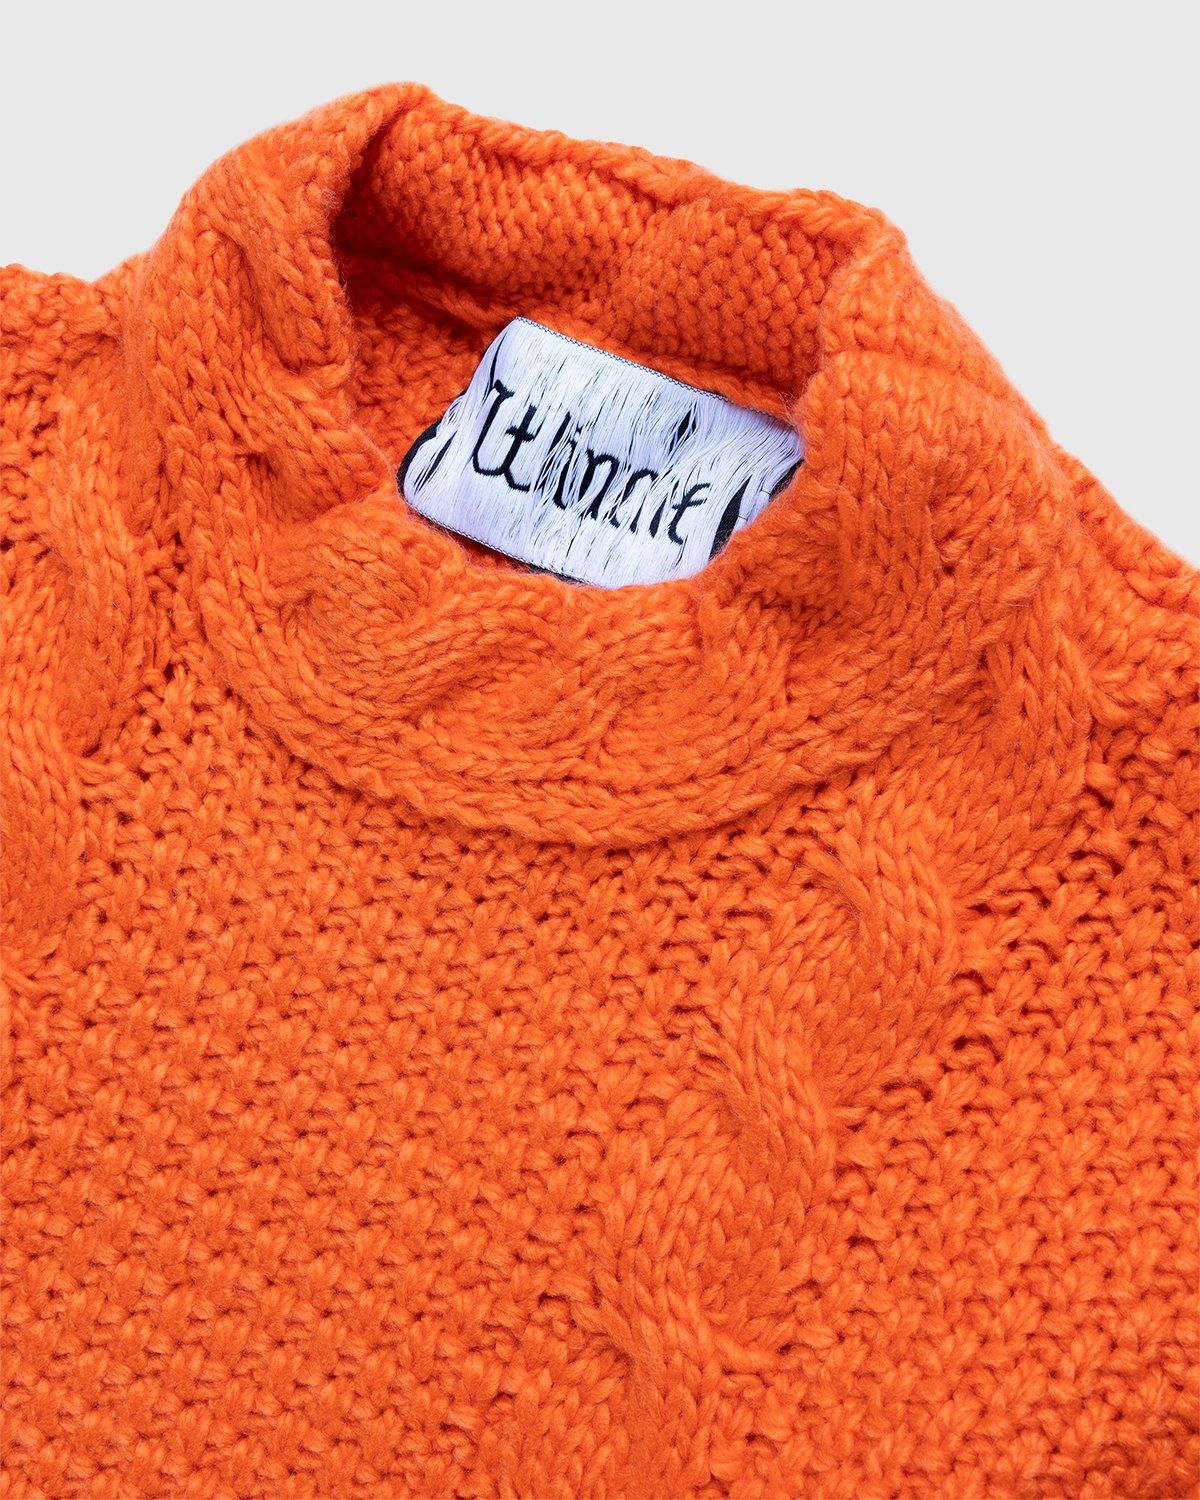 Winnie New York - Intwined Cable Knit Sweater Red - Image 3